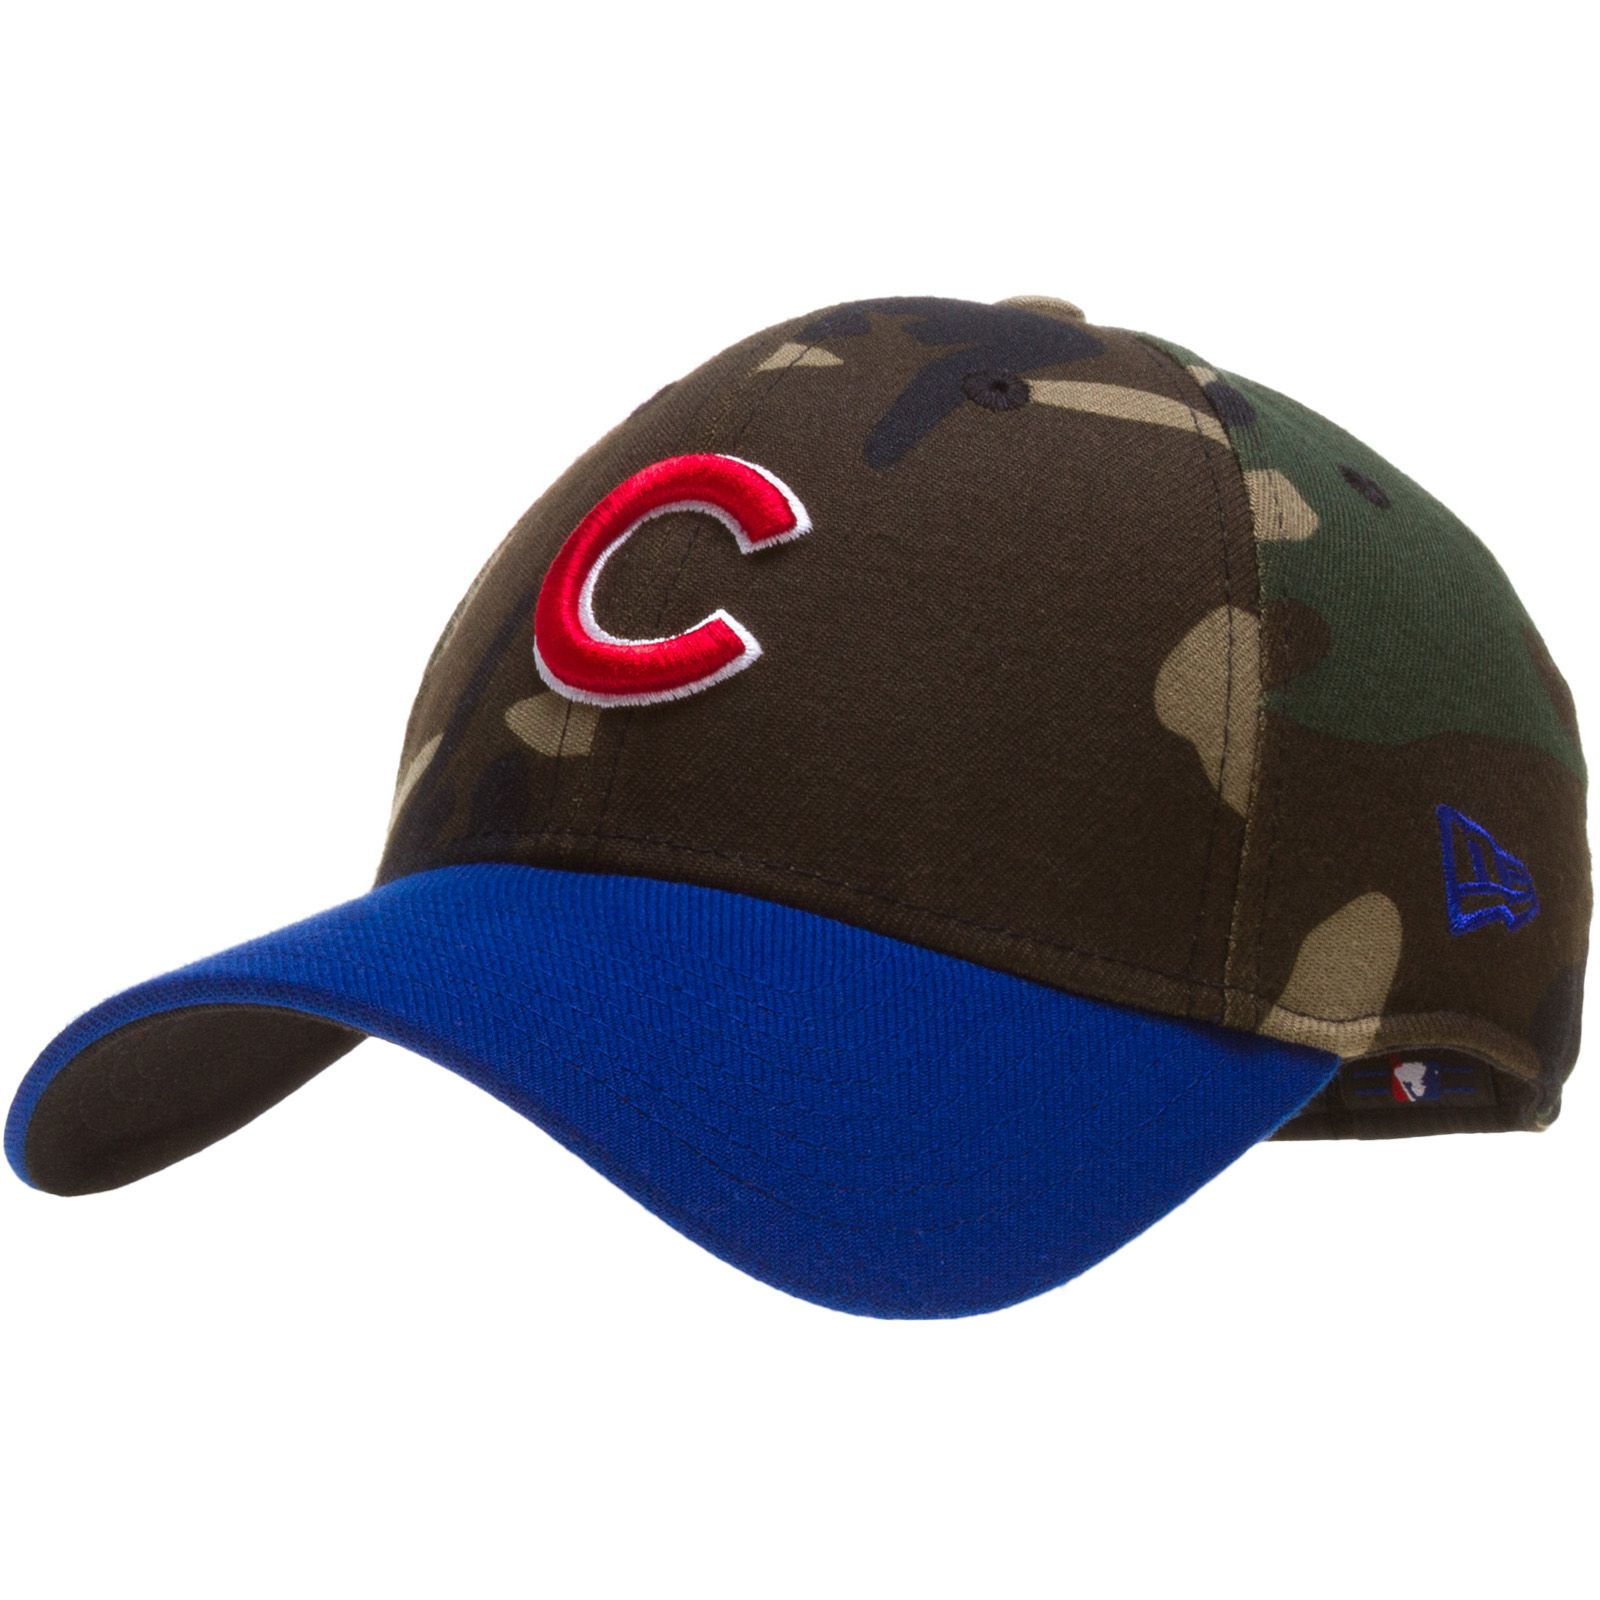 56e1f7a4135 ... czech chicago cubs camo blue flex fit hat by new era chicago cubs  chicagocubs 8a193 c399c